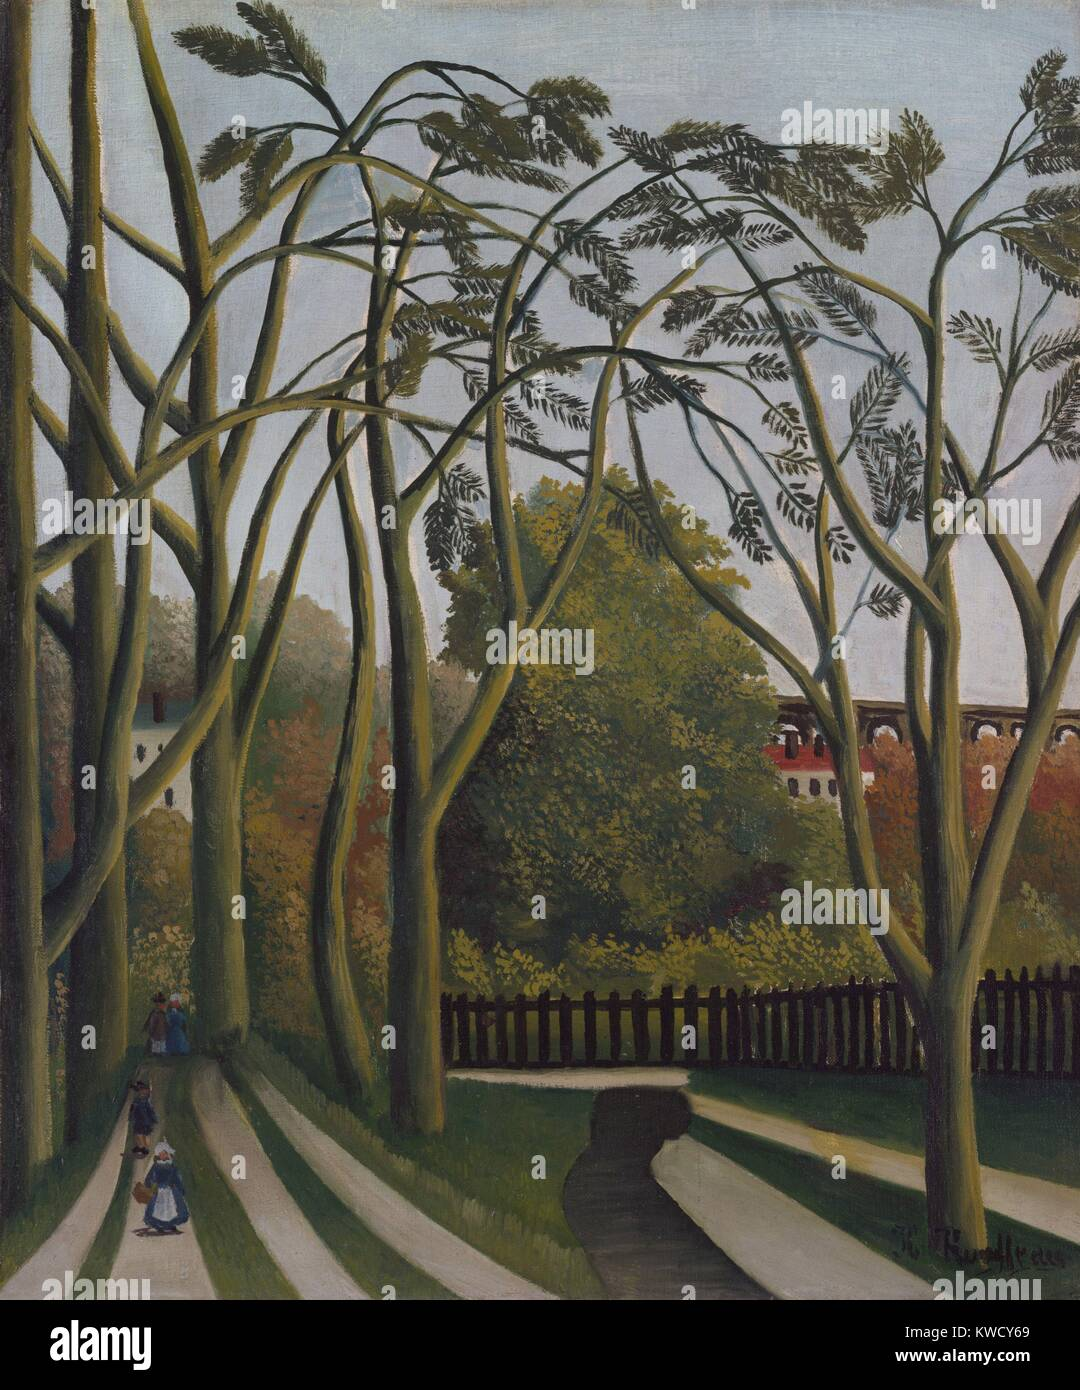 The Banks of the Bievre near Bicetre, by Henri Rousseau, 1908-09, French Primitivism, oil painting. The scene depicts - Stock Image